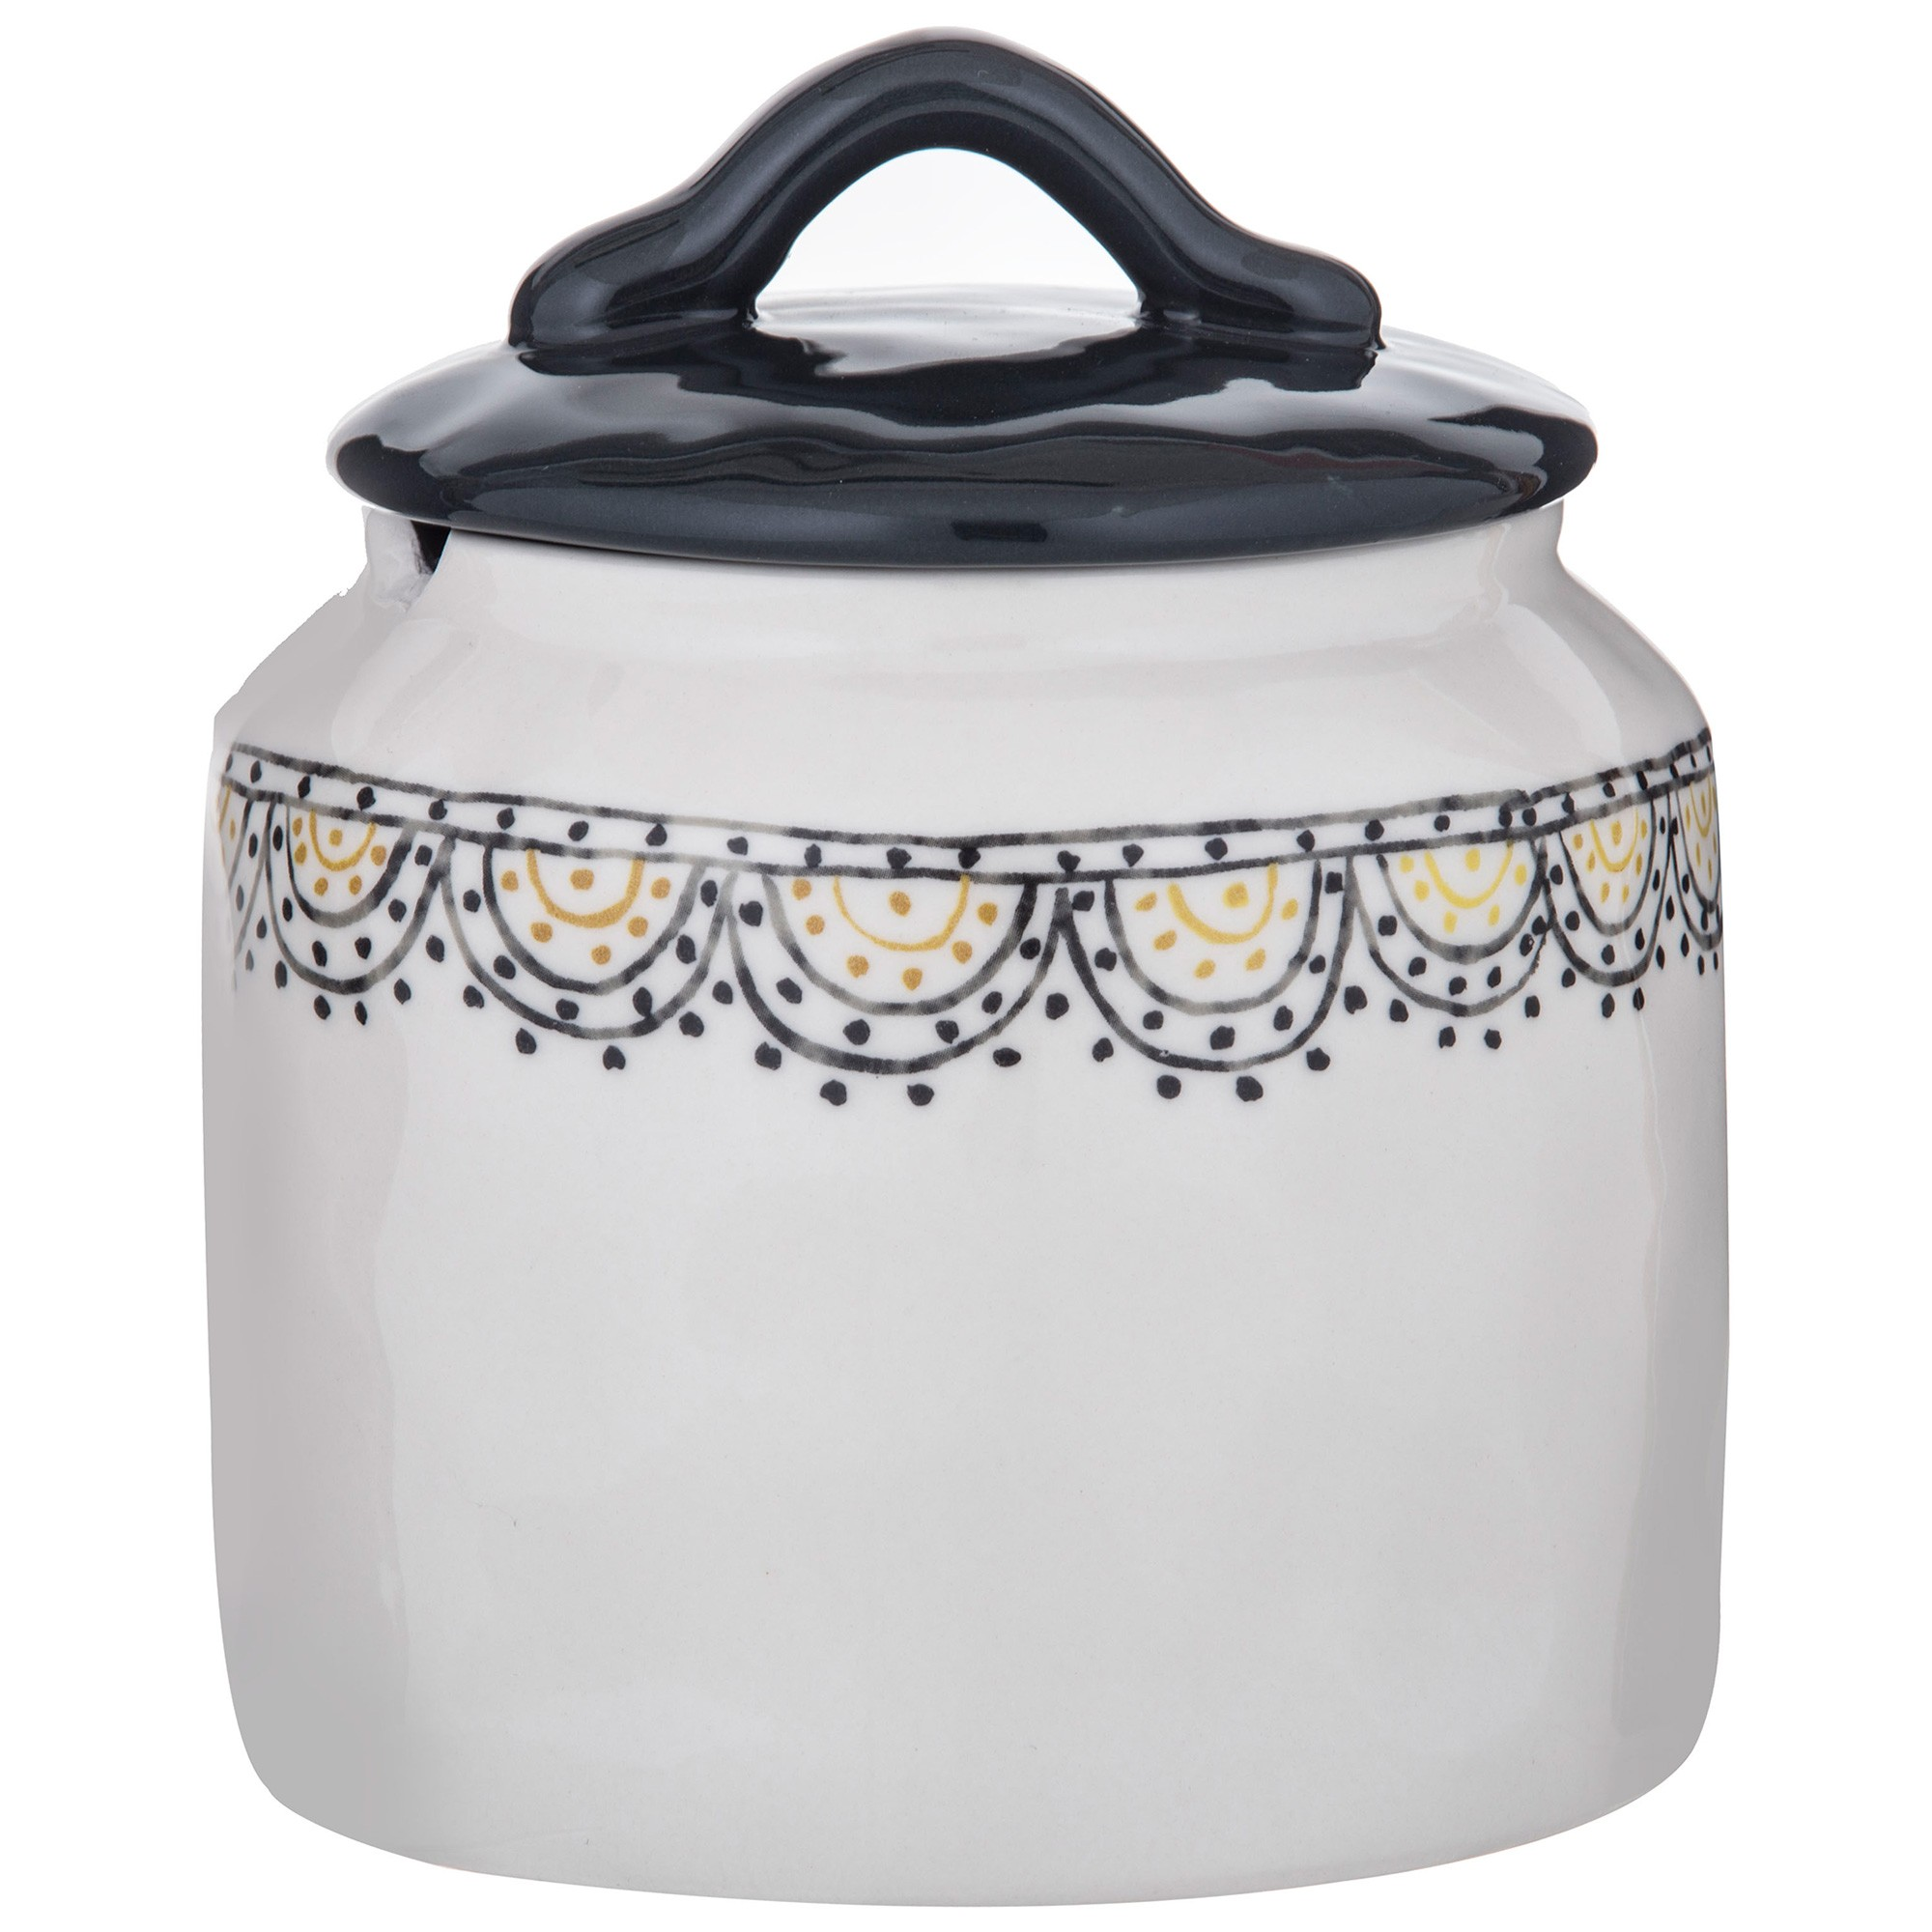 Ethnique Ceramic Canister, Black Lid